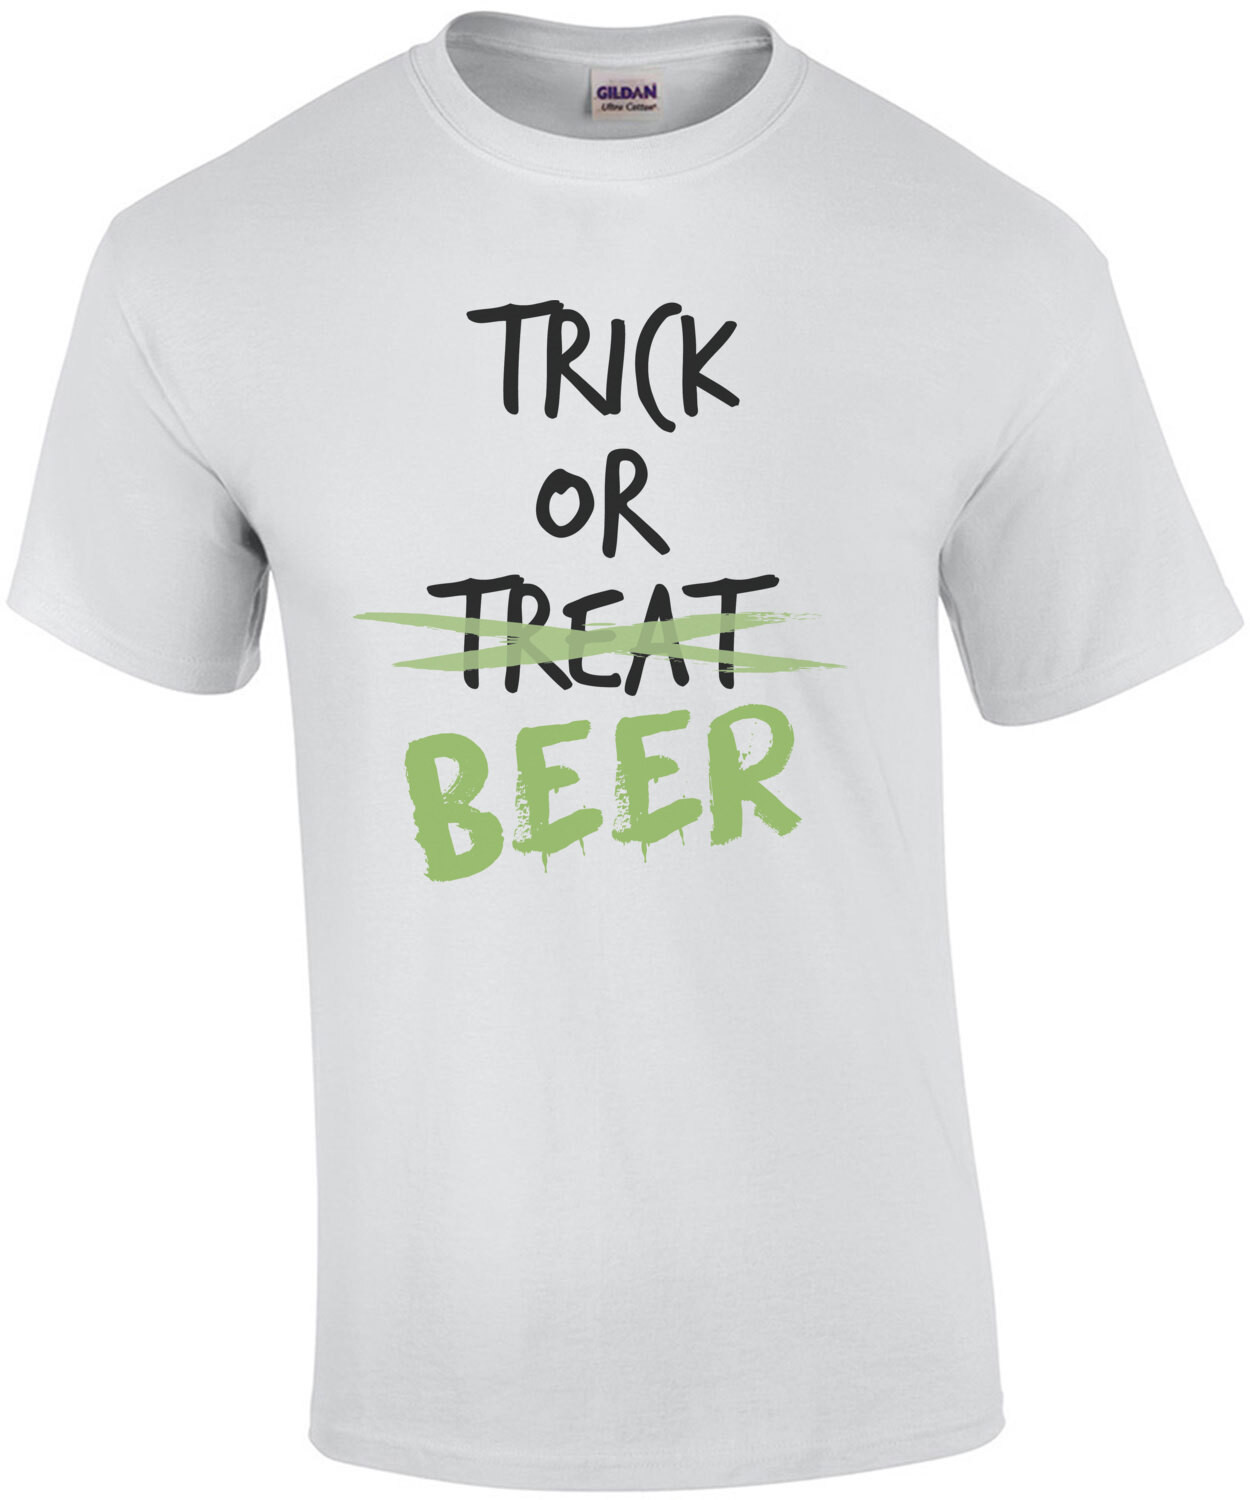 Trick or treat - beer - funny halloween t-shirt